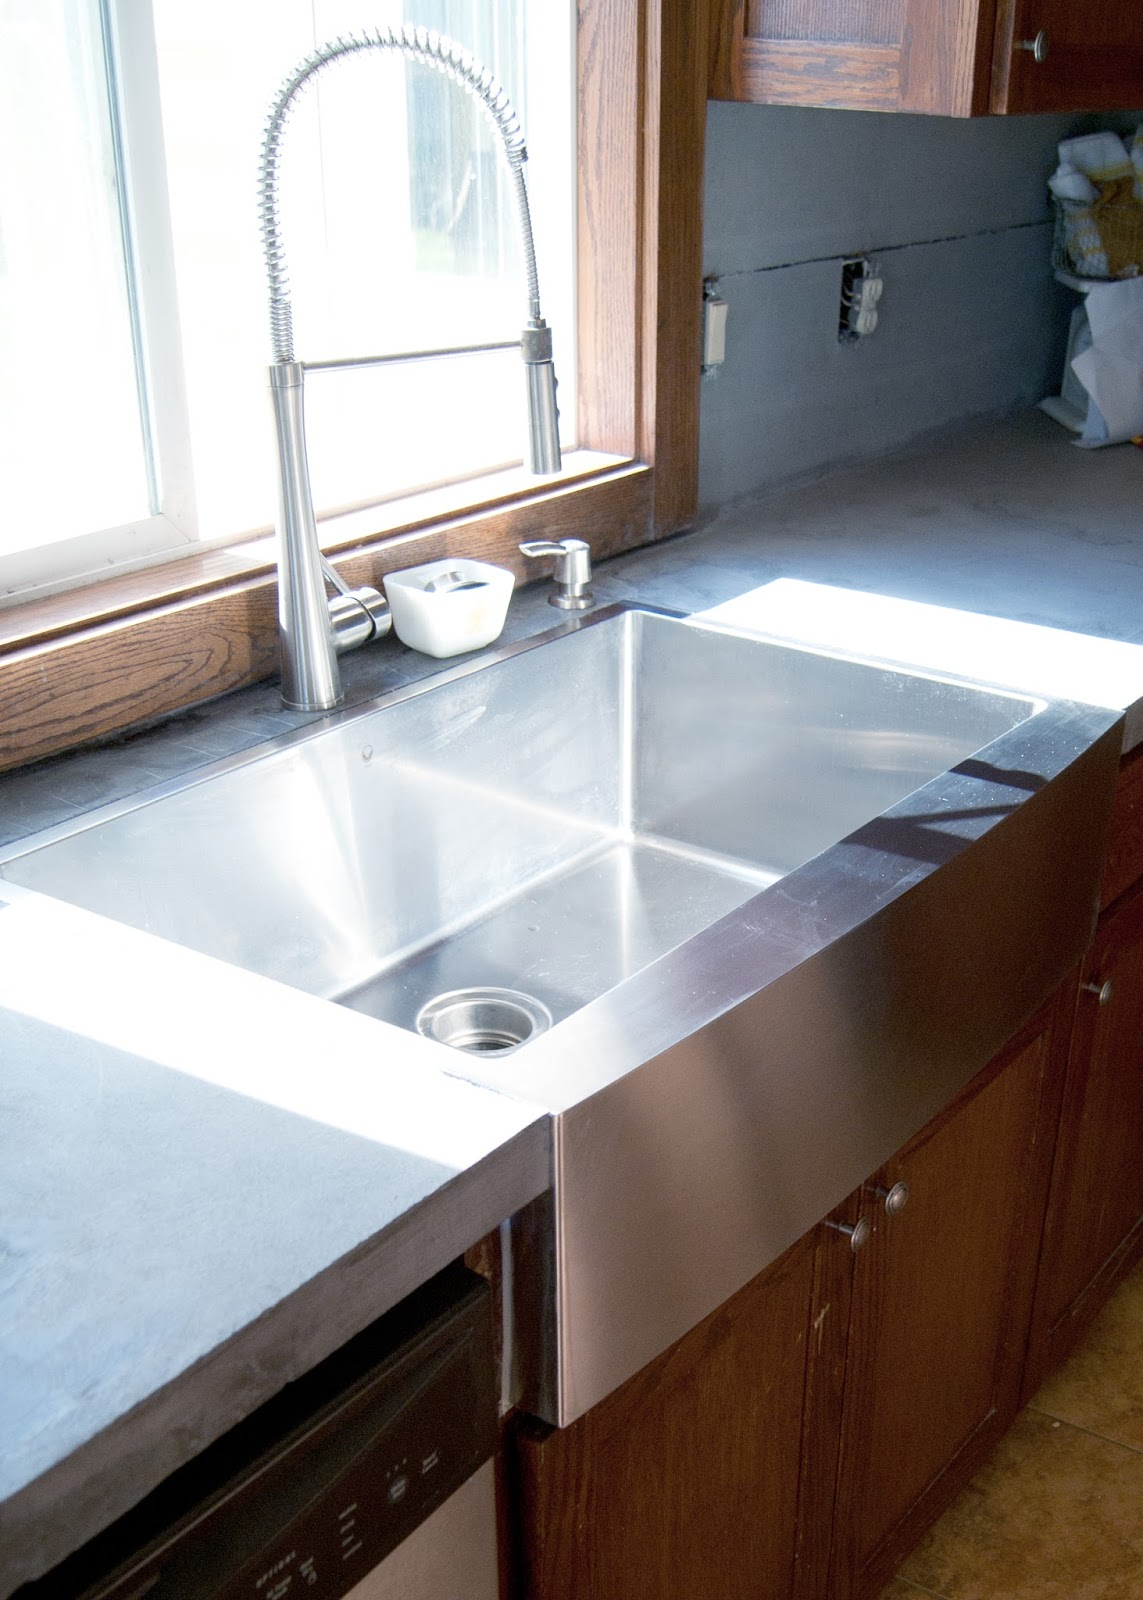 How To Grind Granite Countertops Diy Concrete Counters Poured Over Laminate Averie Lane